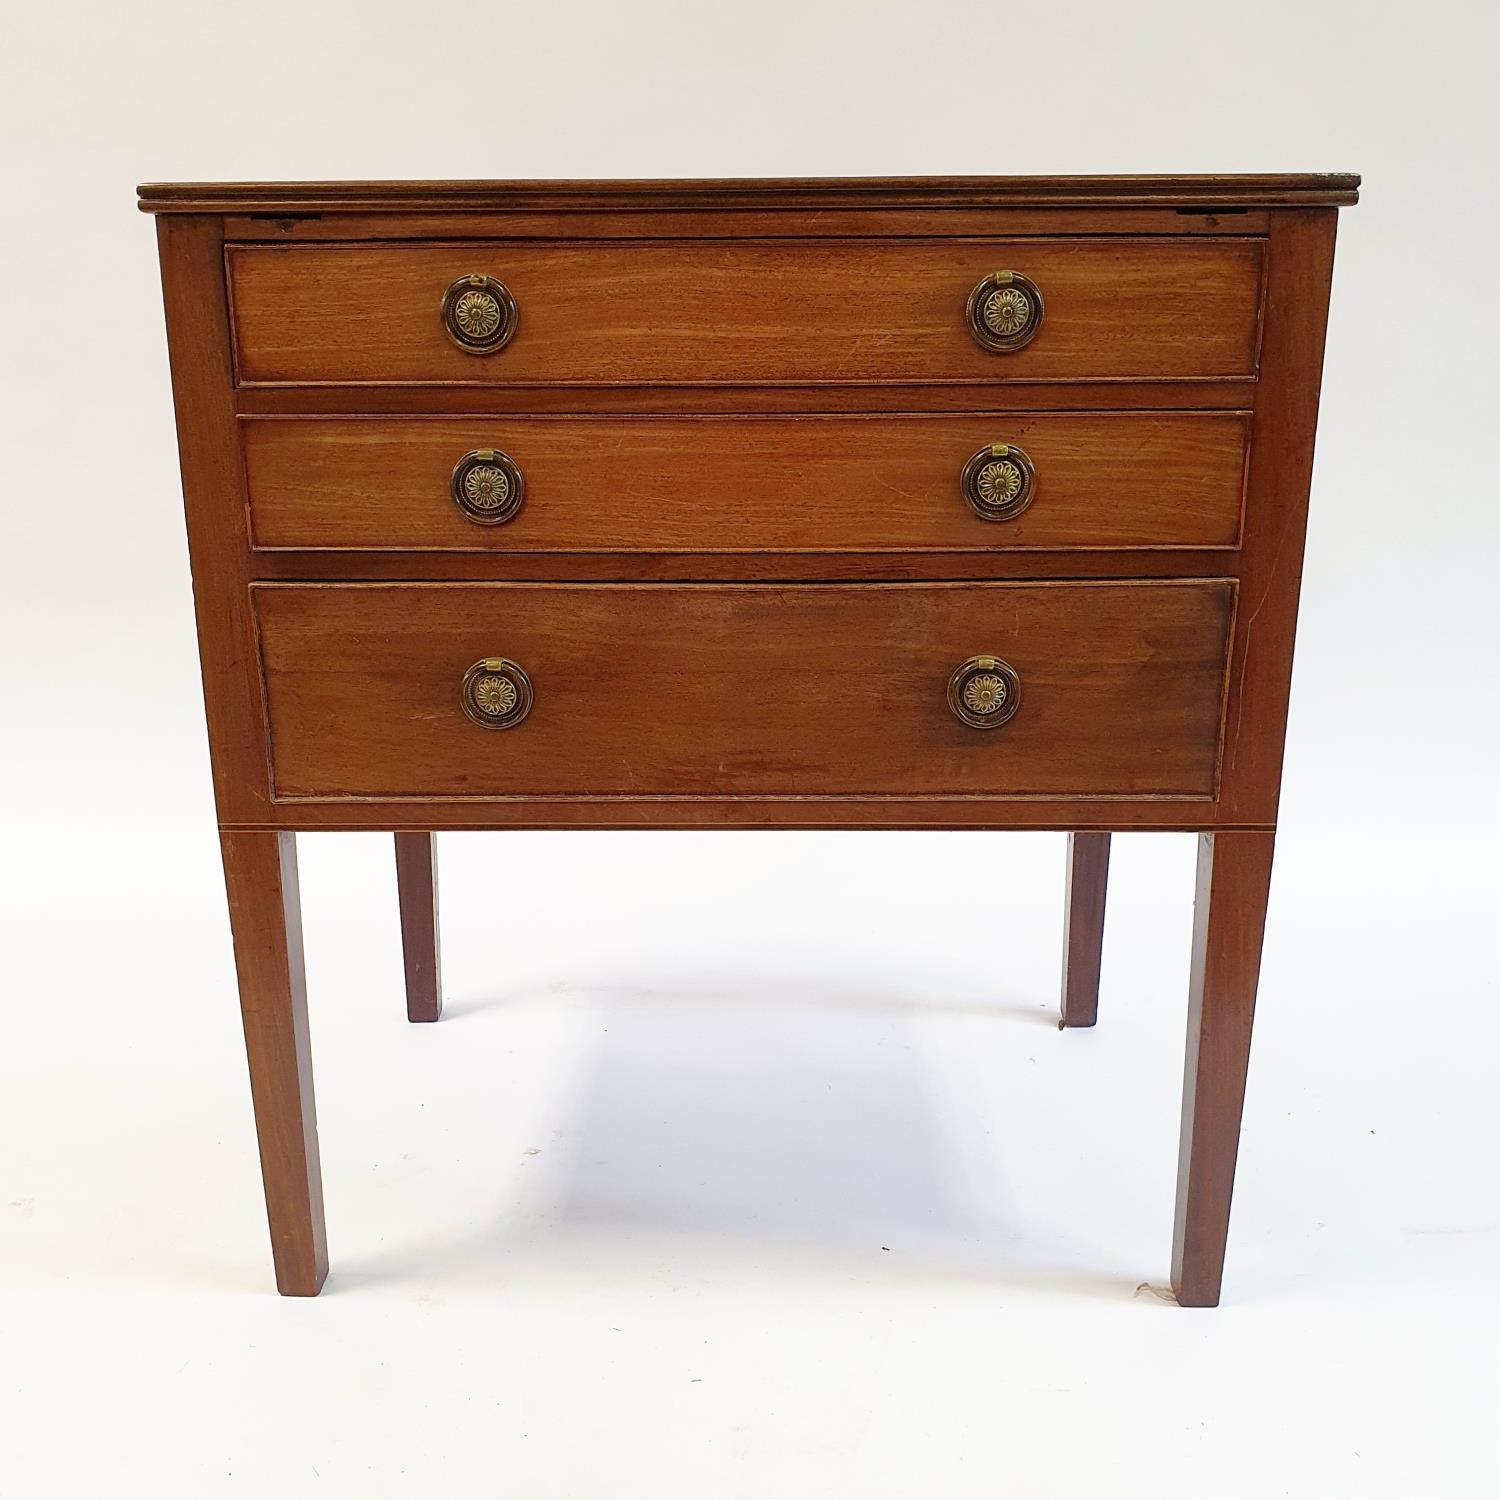 A mahogany chest of three drawers, on square tapering legs, 68 cm wide